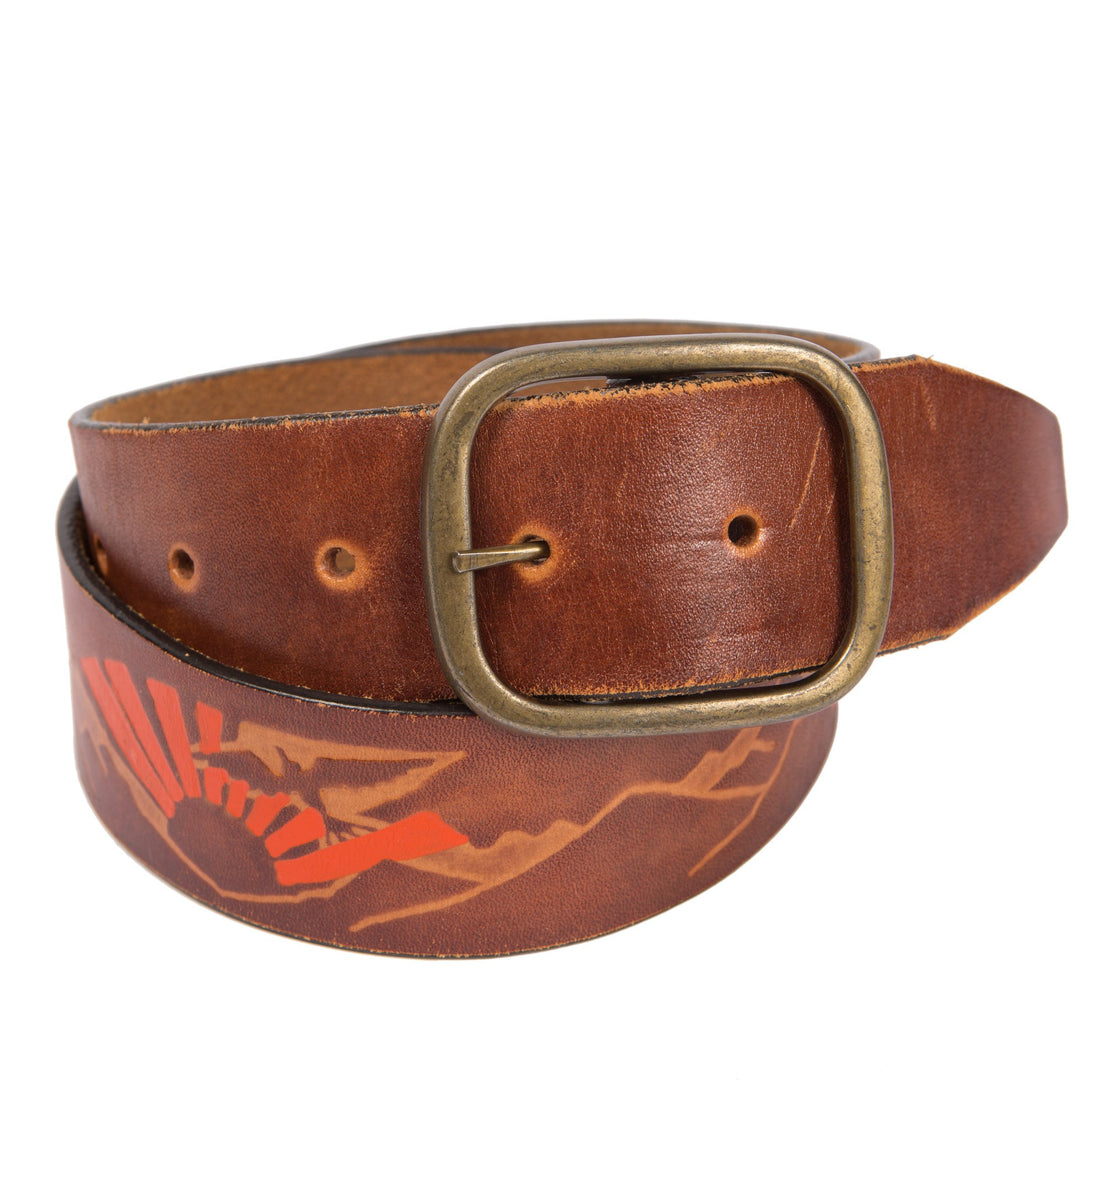 Vintage 70's Brown Tooled Horizon Belt, 32 - Vintage - Iron and Resin